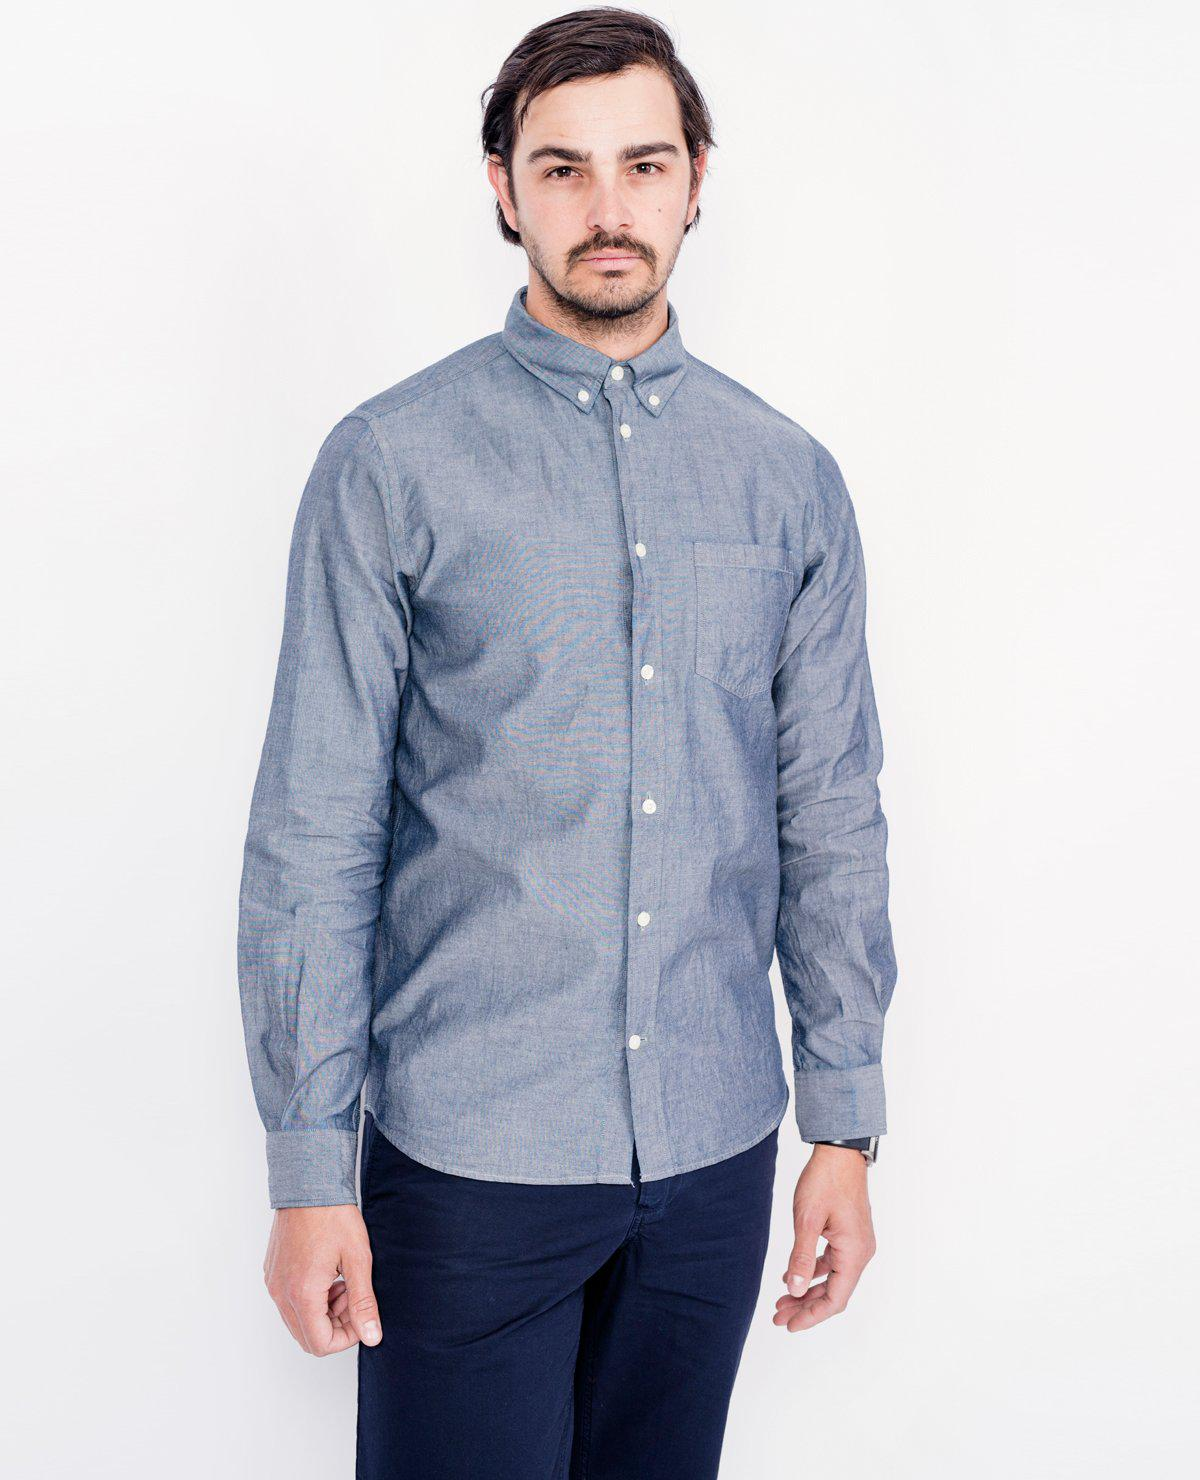 3c4a45110a Lyst - Norse Projects Anton Chambray Shirt   Light Indigo in Blue ...